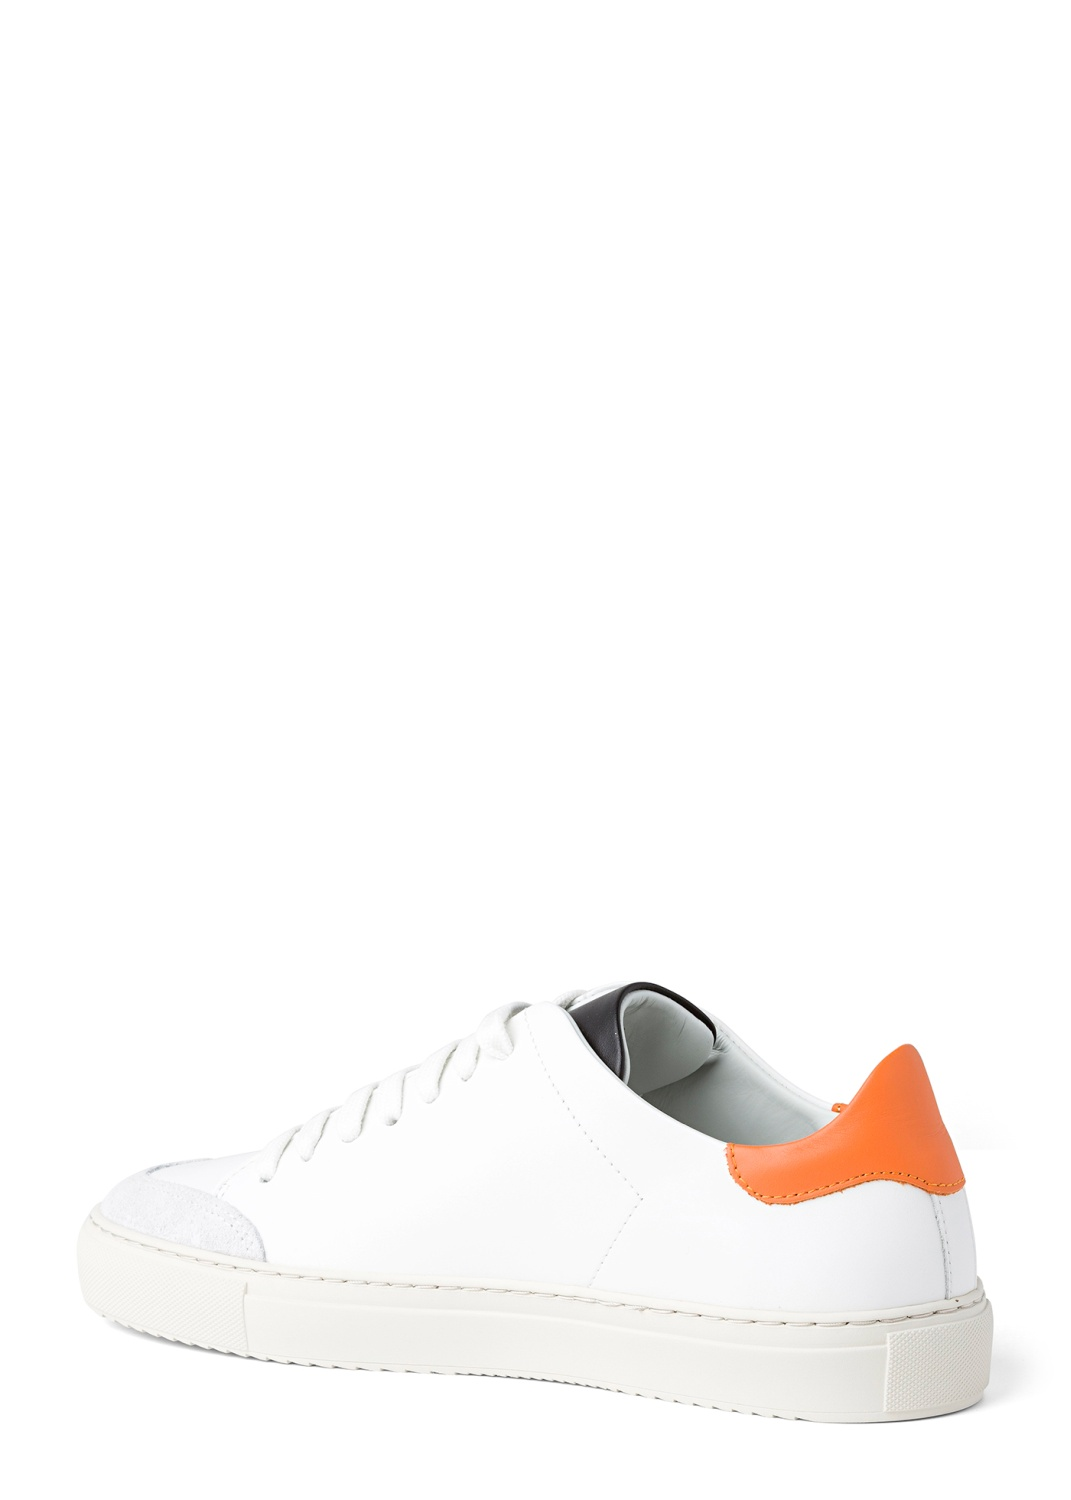 Clean 90 Sneaker - White Leather image number 2